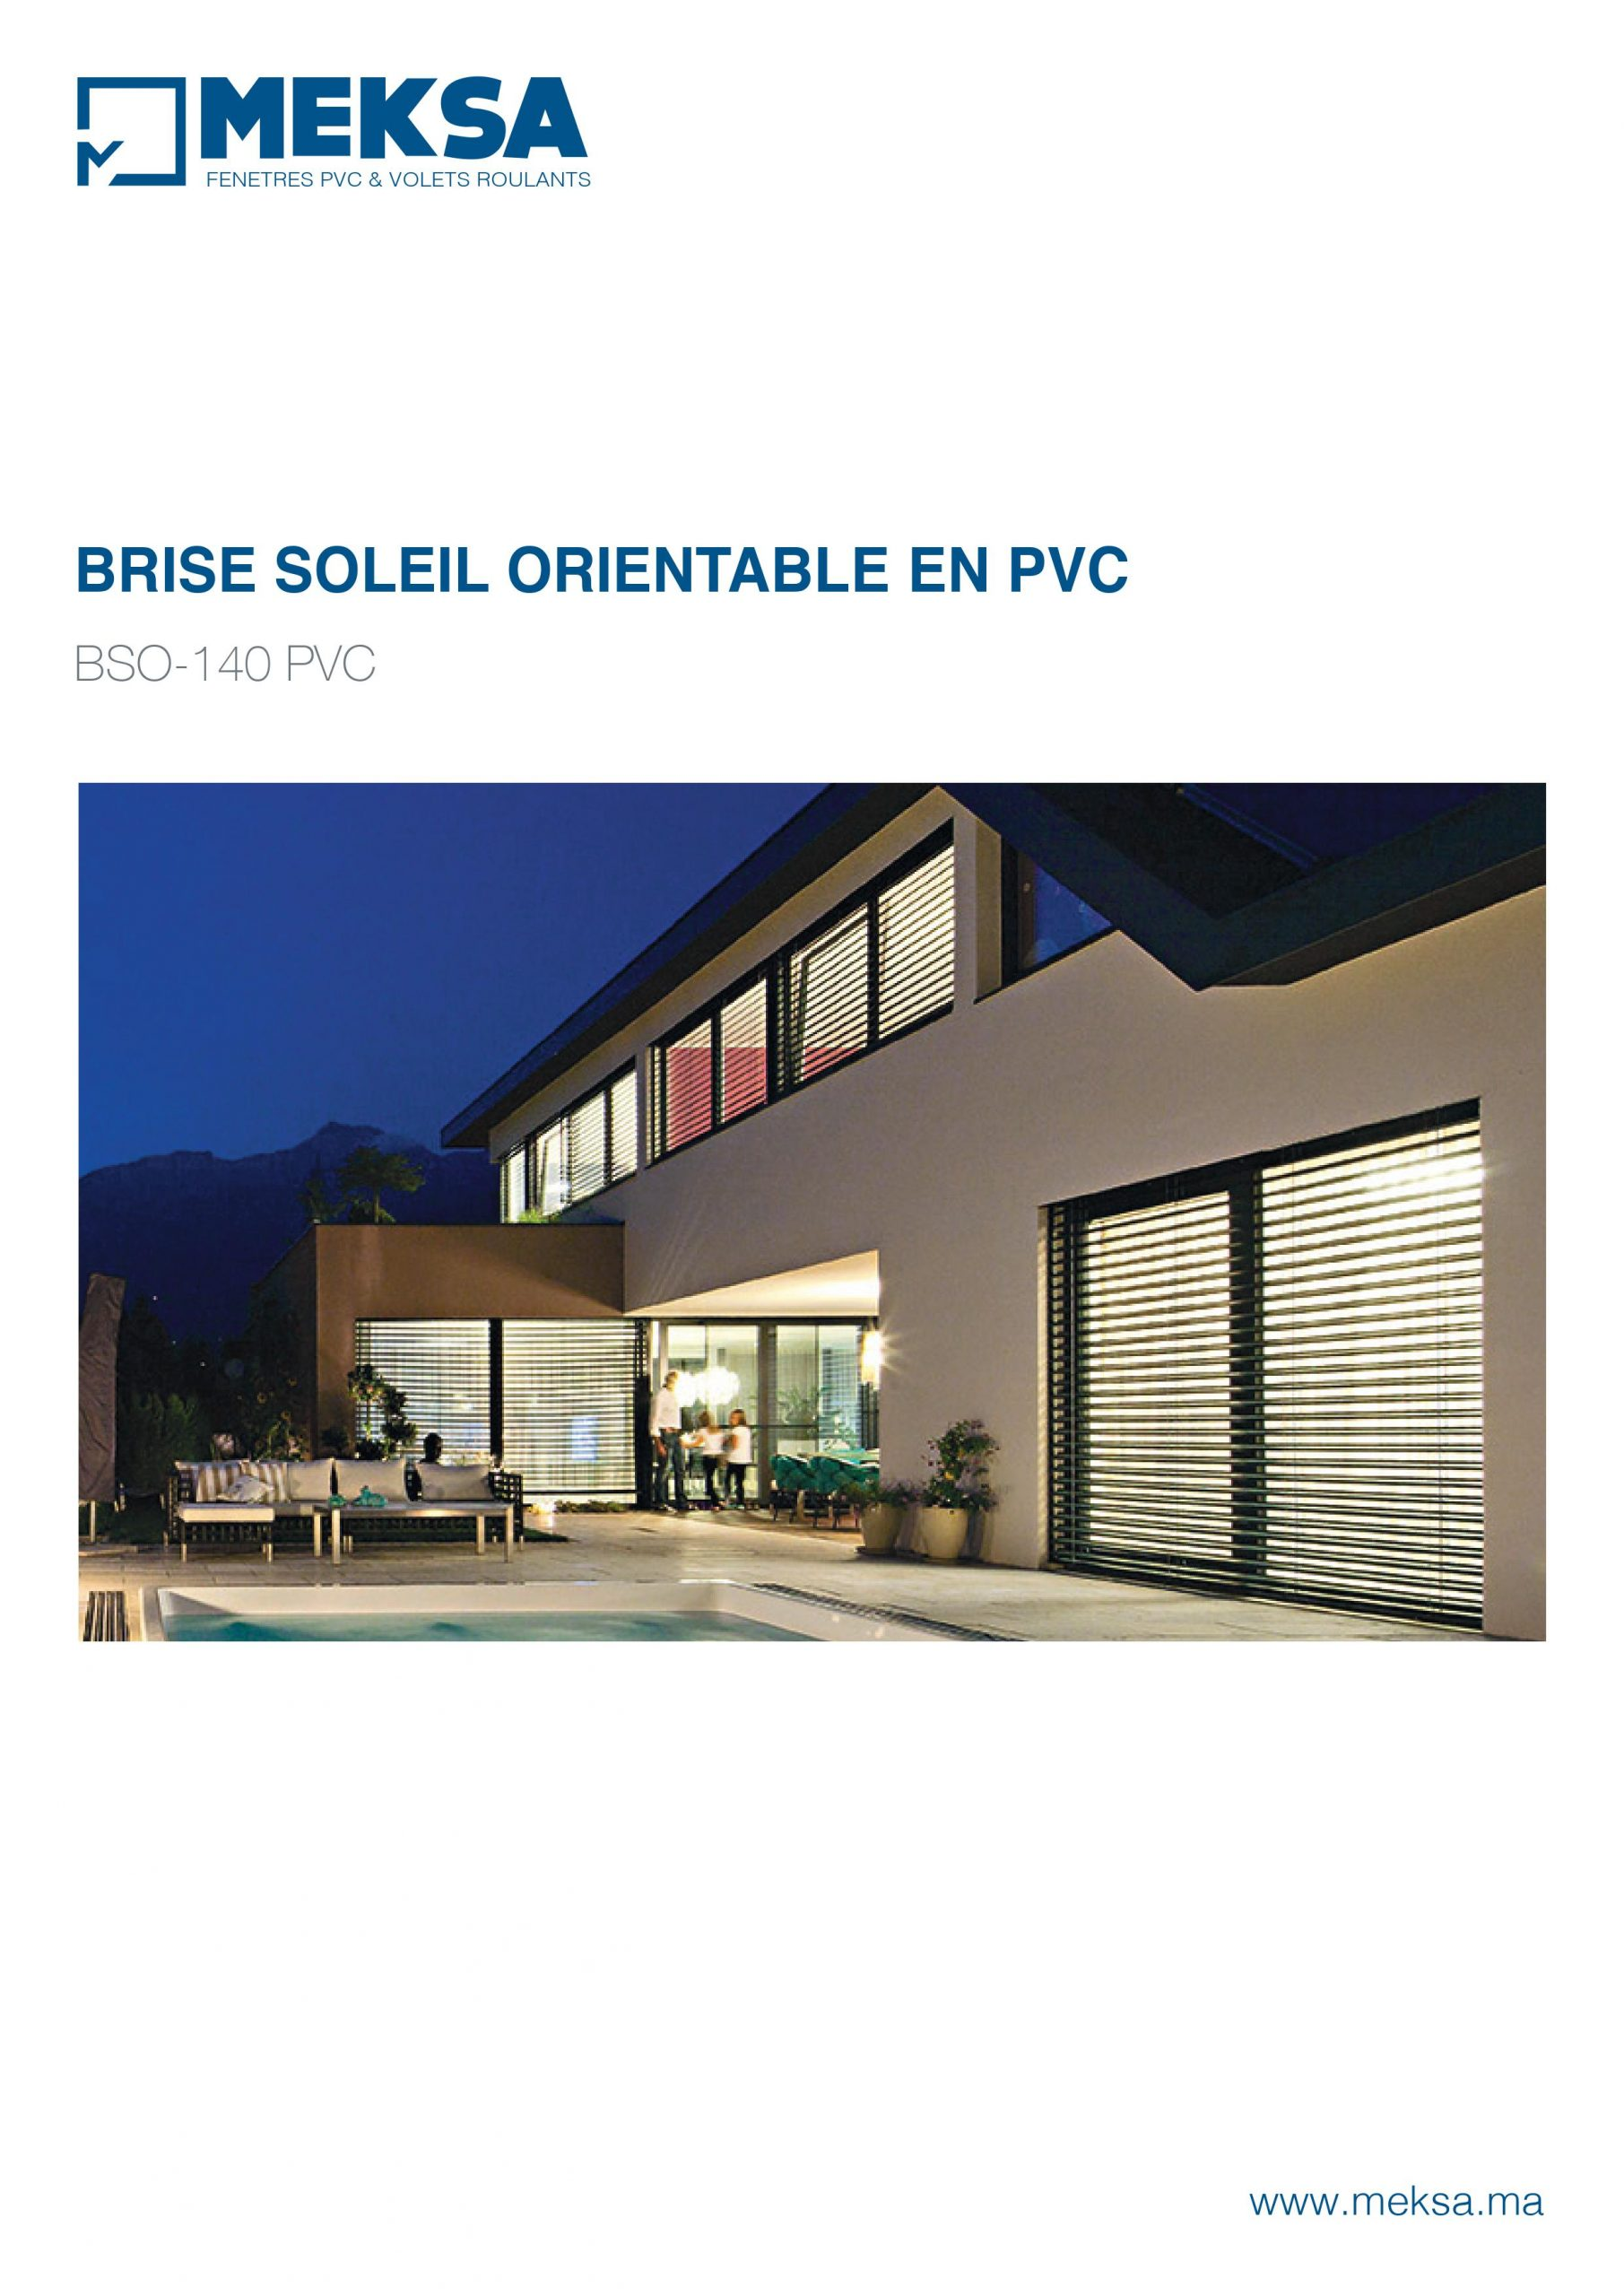 BS Orientable 140PVC V1 1 images1 scaled